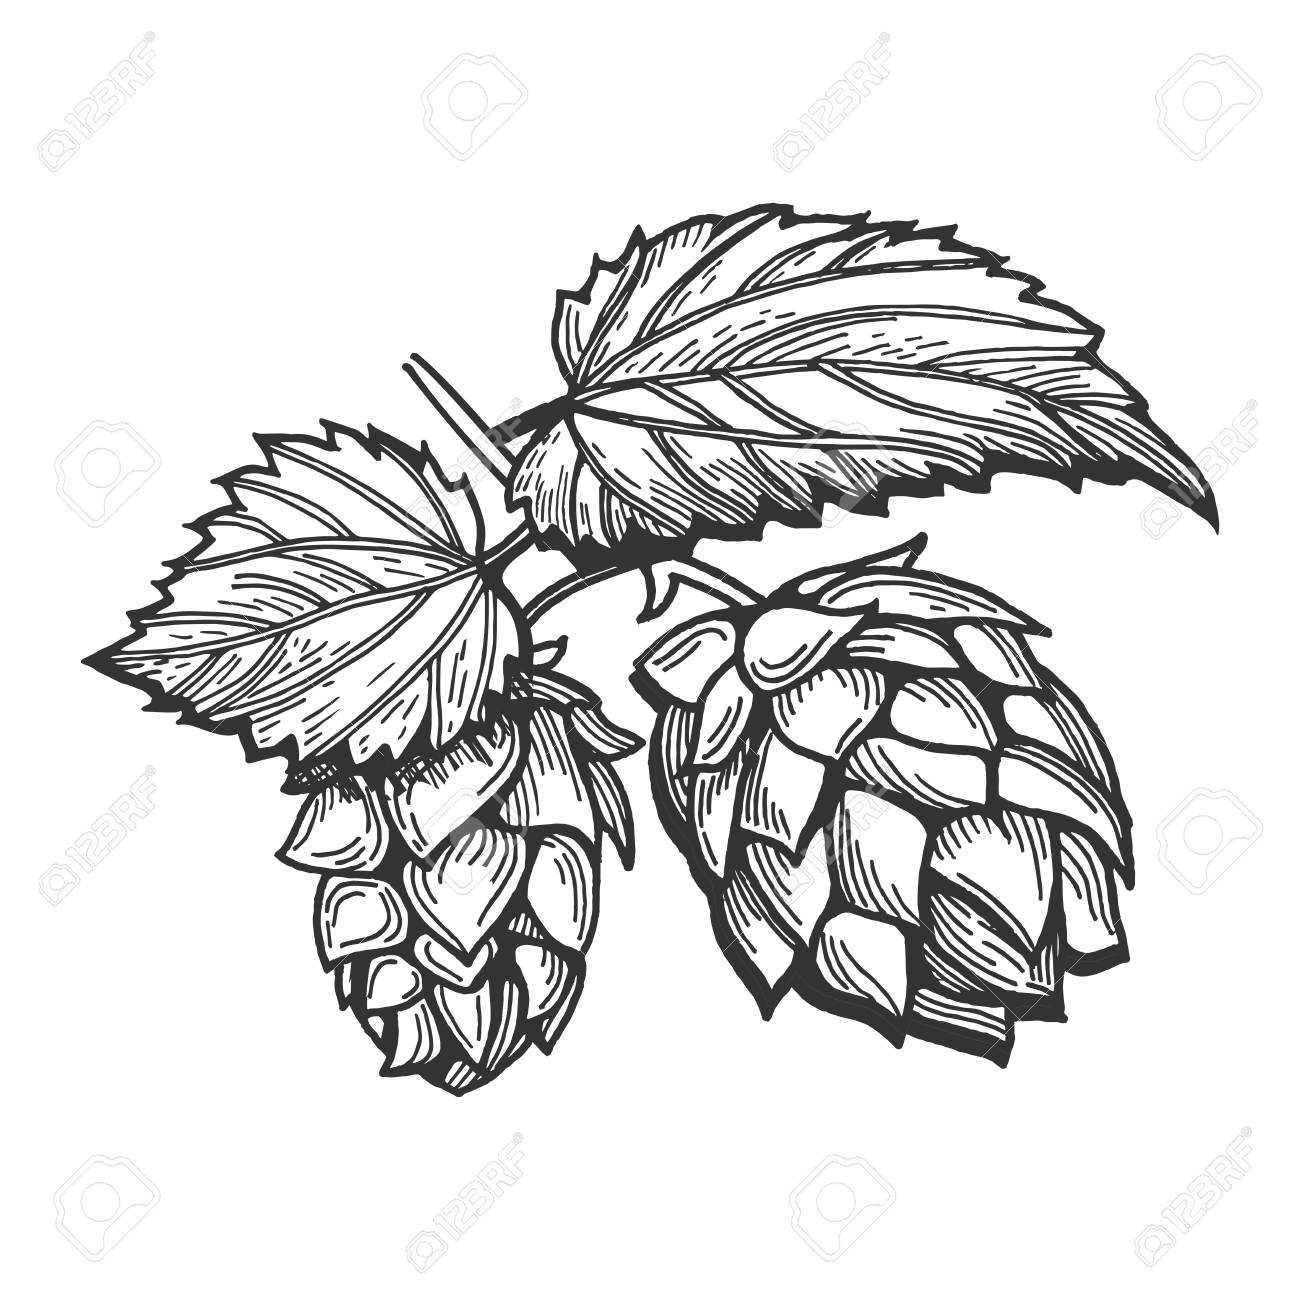 1300x1300 Vector Illustration Of A Hops With Leaves Branch. Hand Drawn